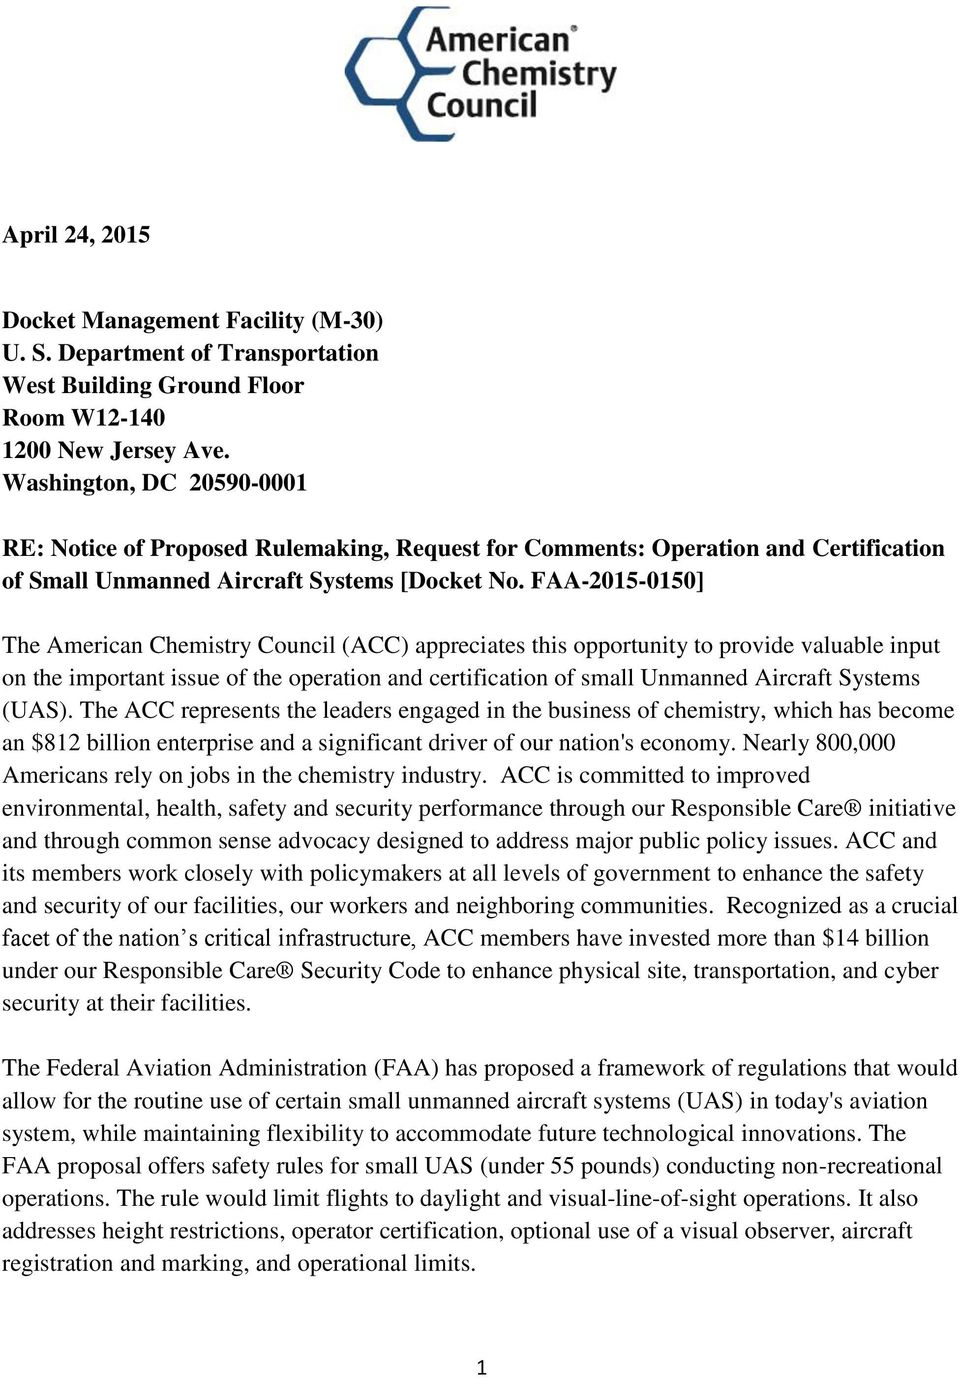 FAA-2015-0150] The American Chemistry Council (ACC) appreciates this opportunity to provide valuable input on the important issue of the operation and certification of small Unmanned Aircraft Systems